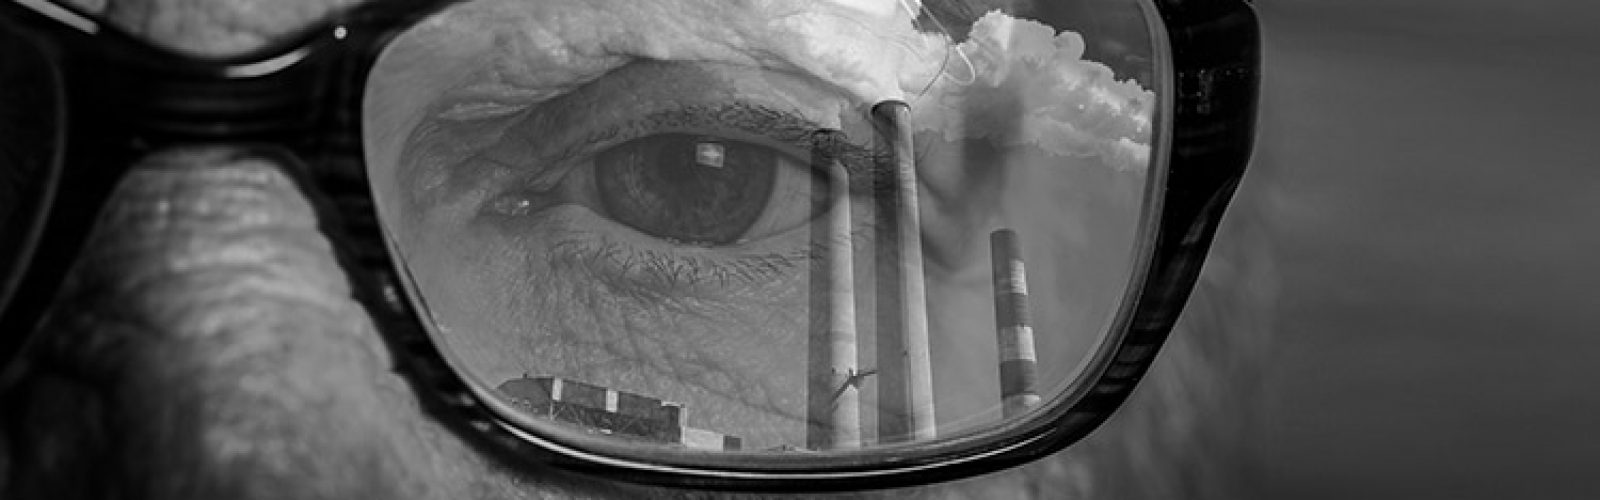 Stronger air pollution standards in U.S. would have significant public health benefits